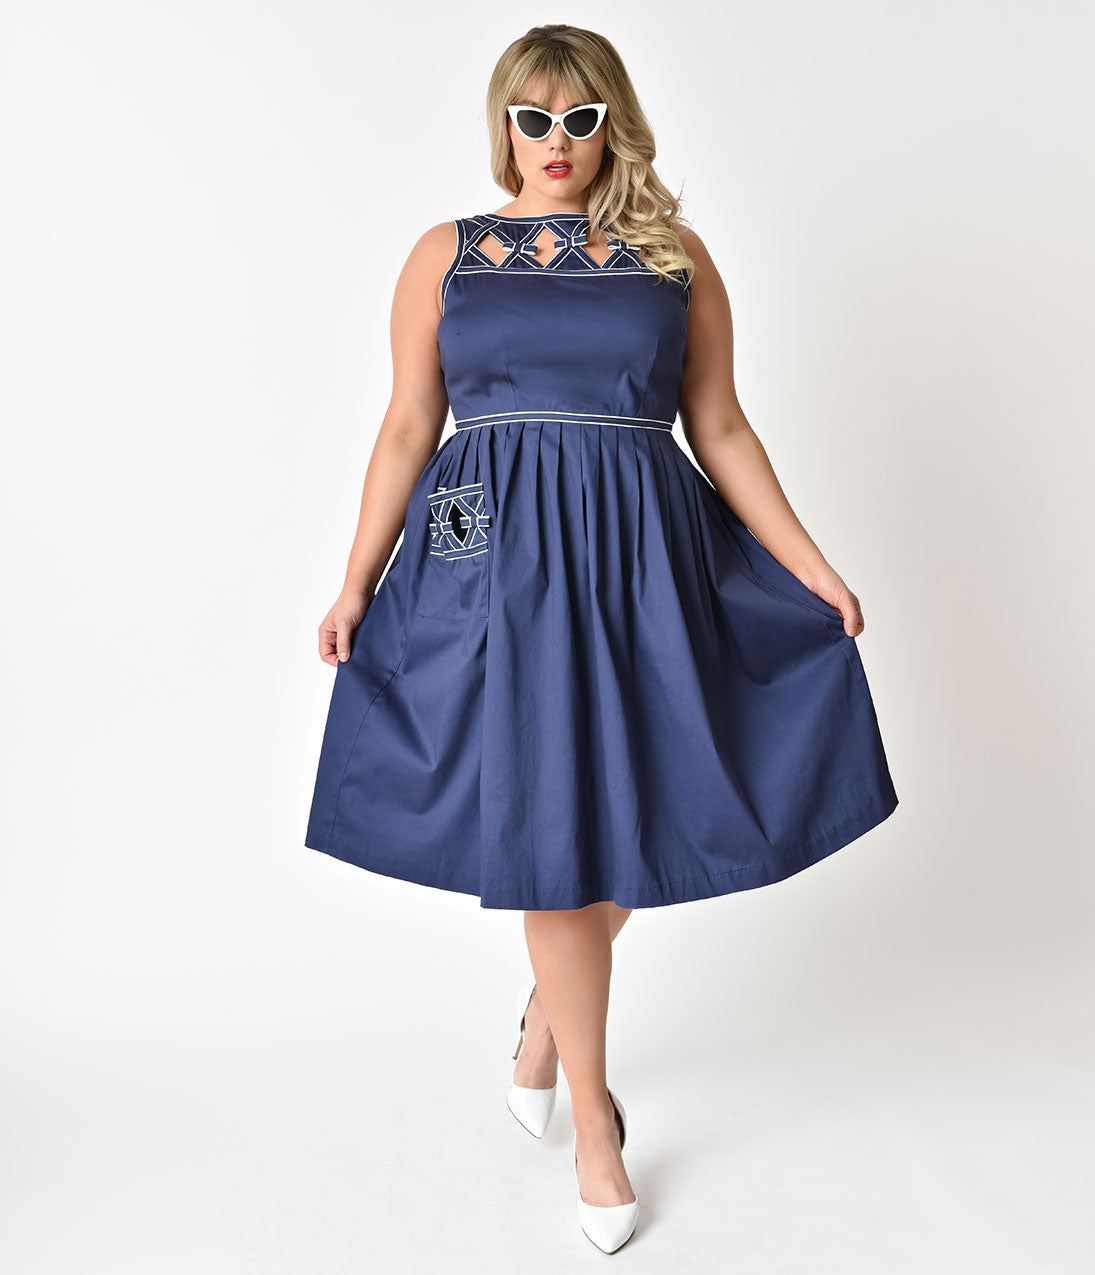 1940s Dresses | 40s Dress, Swing Dress Unique Vintage Plus Size 1940S Style Navy Blue Nautical Weave Lakewood Dress $63.00 AT vintagedancer.com